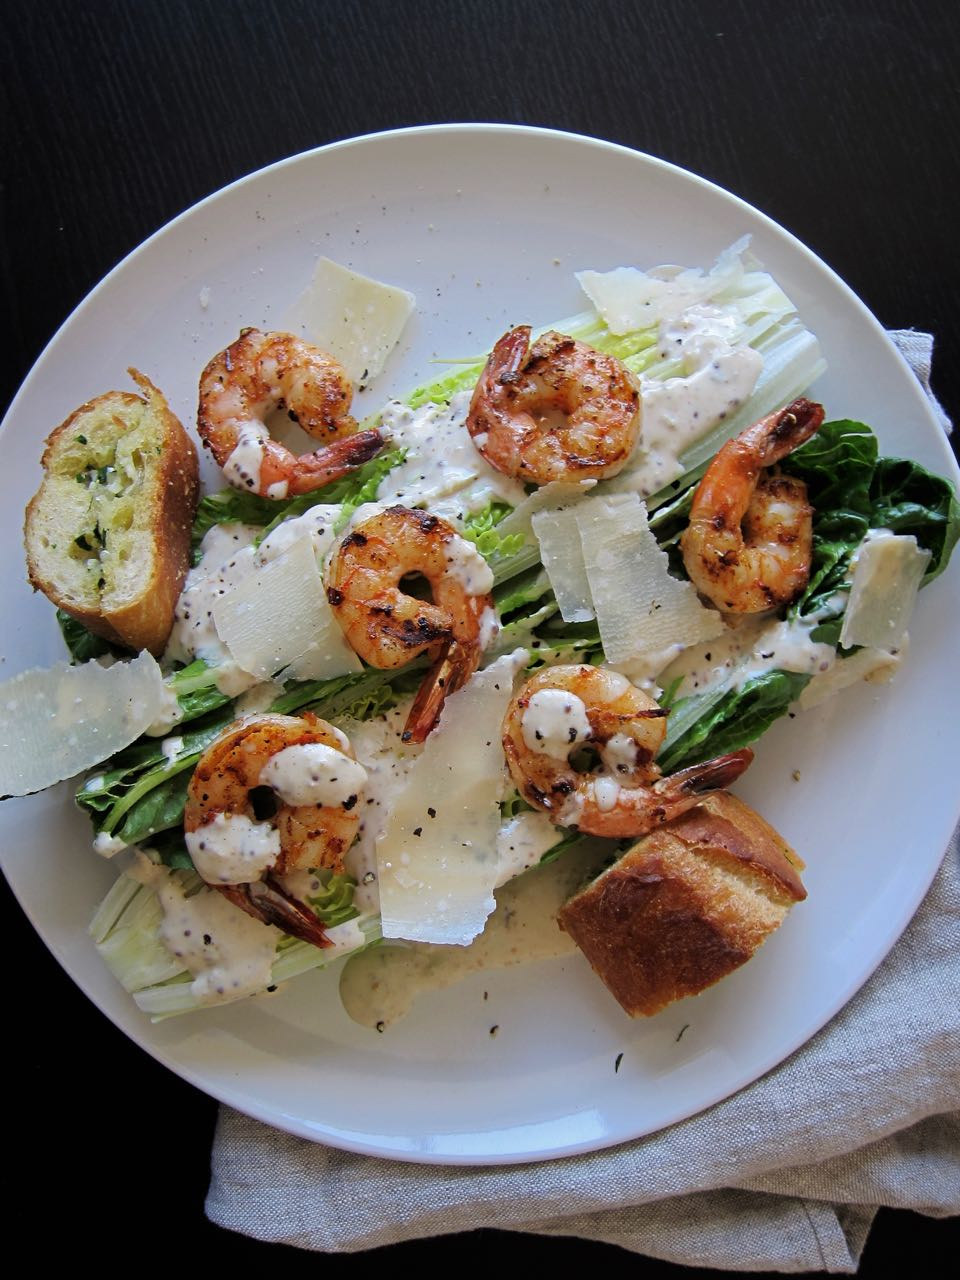 Grilled Shrimp Caesar Salad with Garlic Bread Croutons